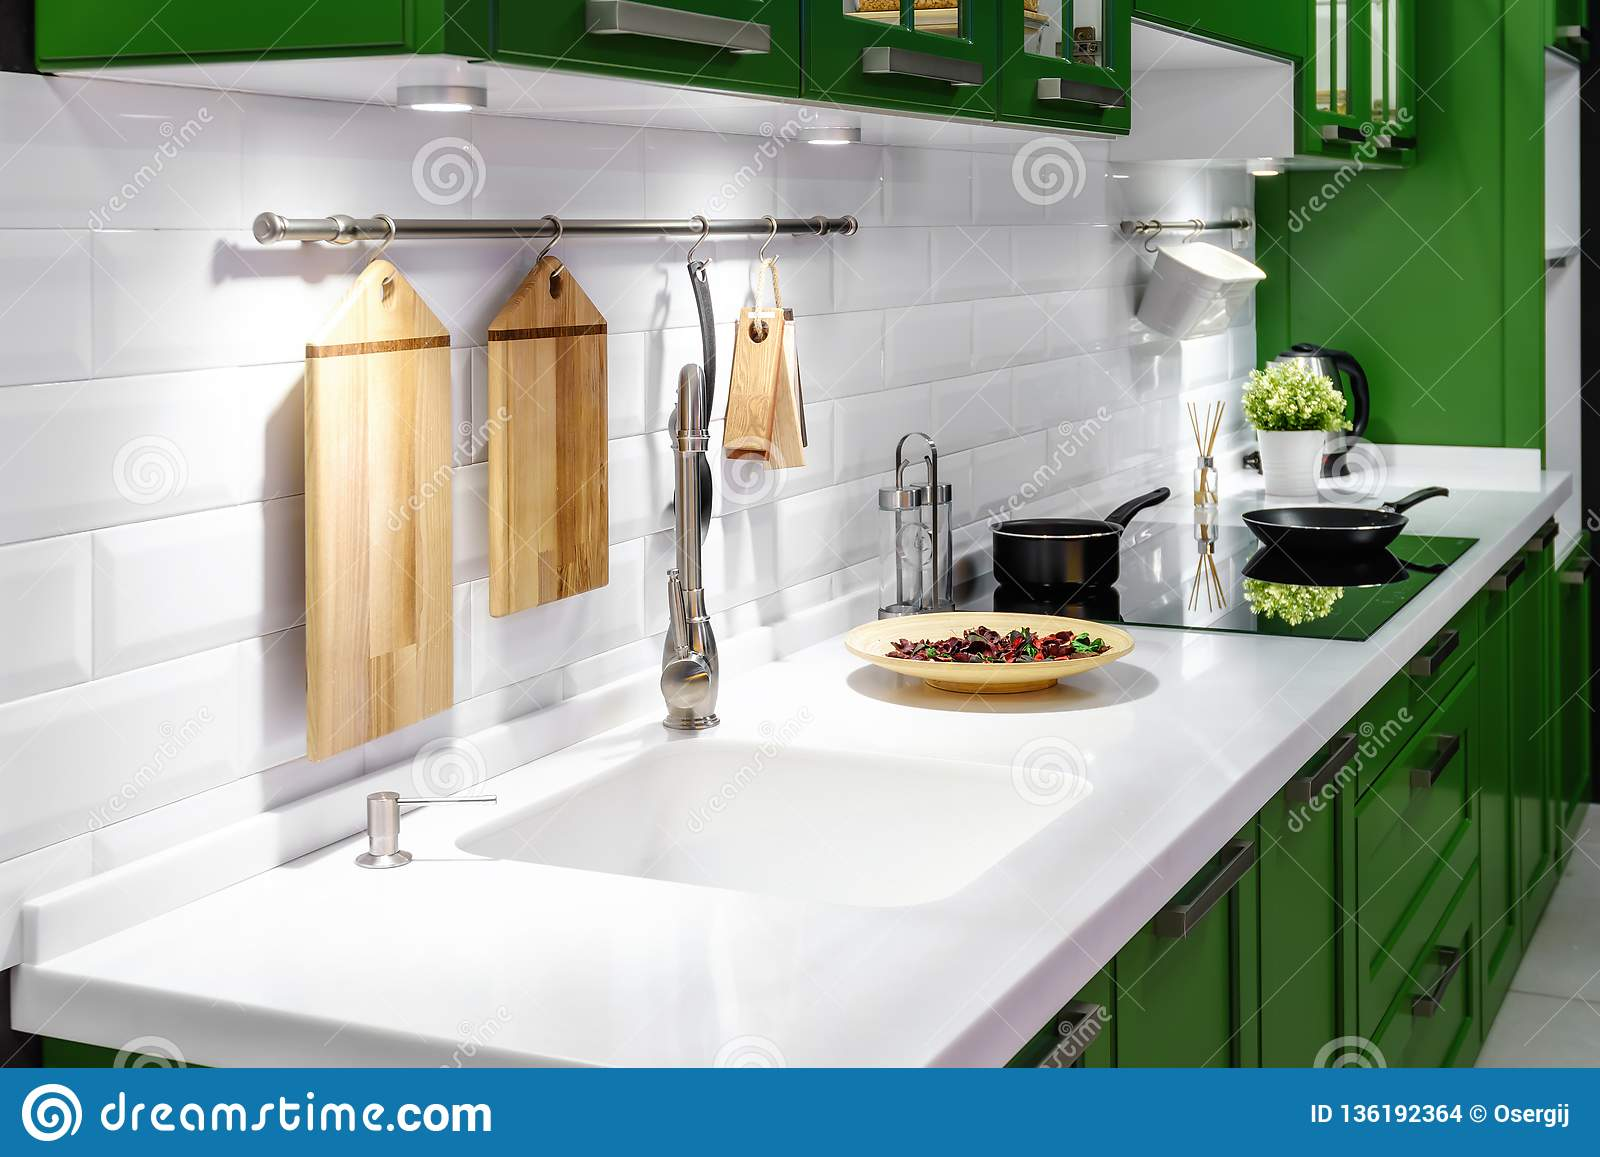 Acrylic Kitchen Sink Built Into The Countertop Stock Photo ...